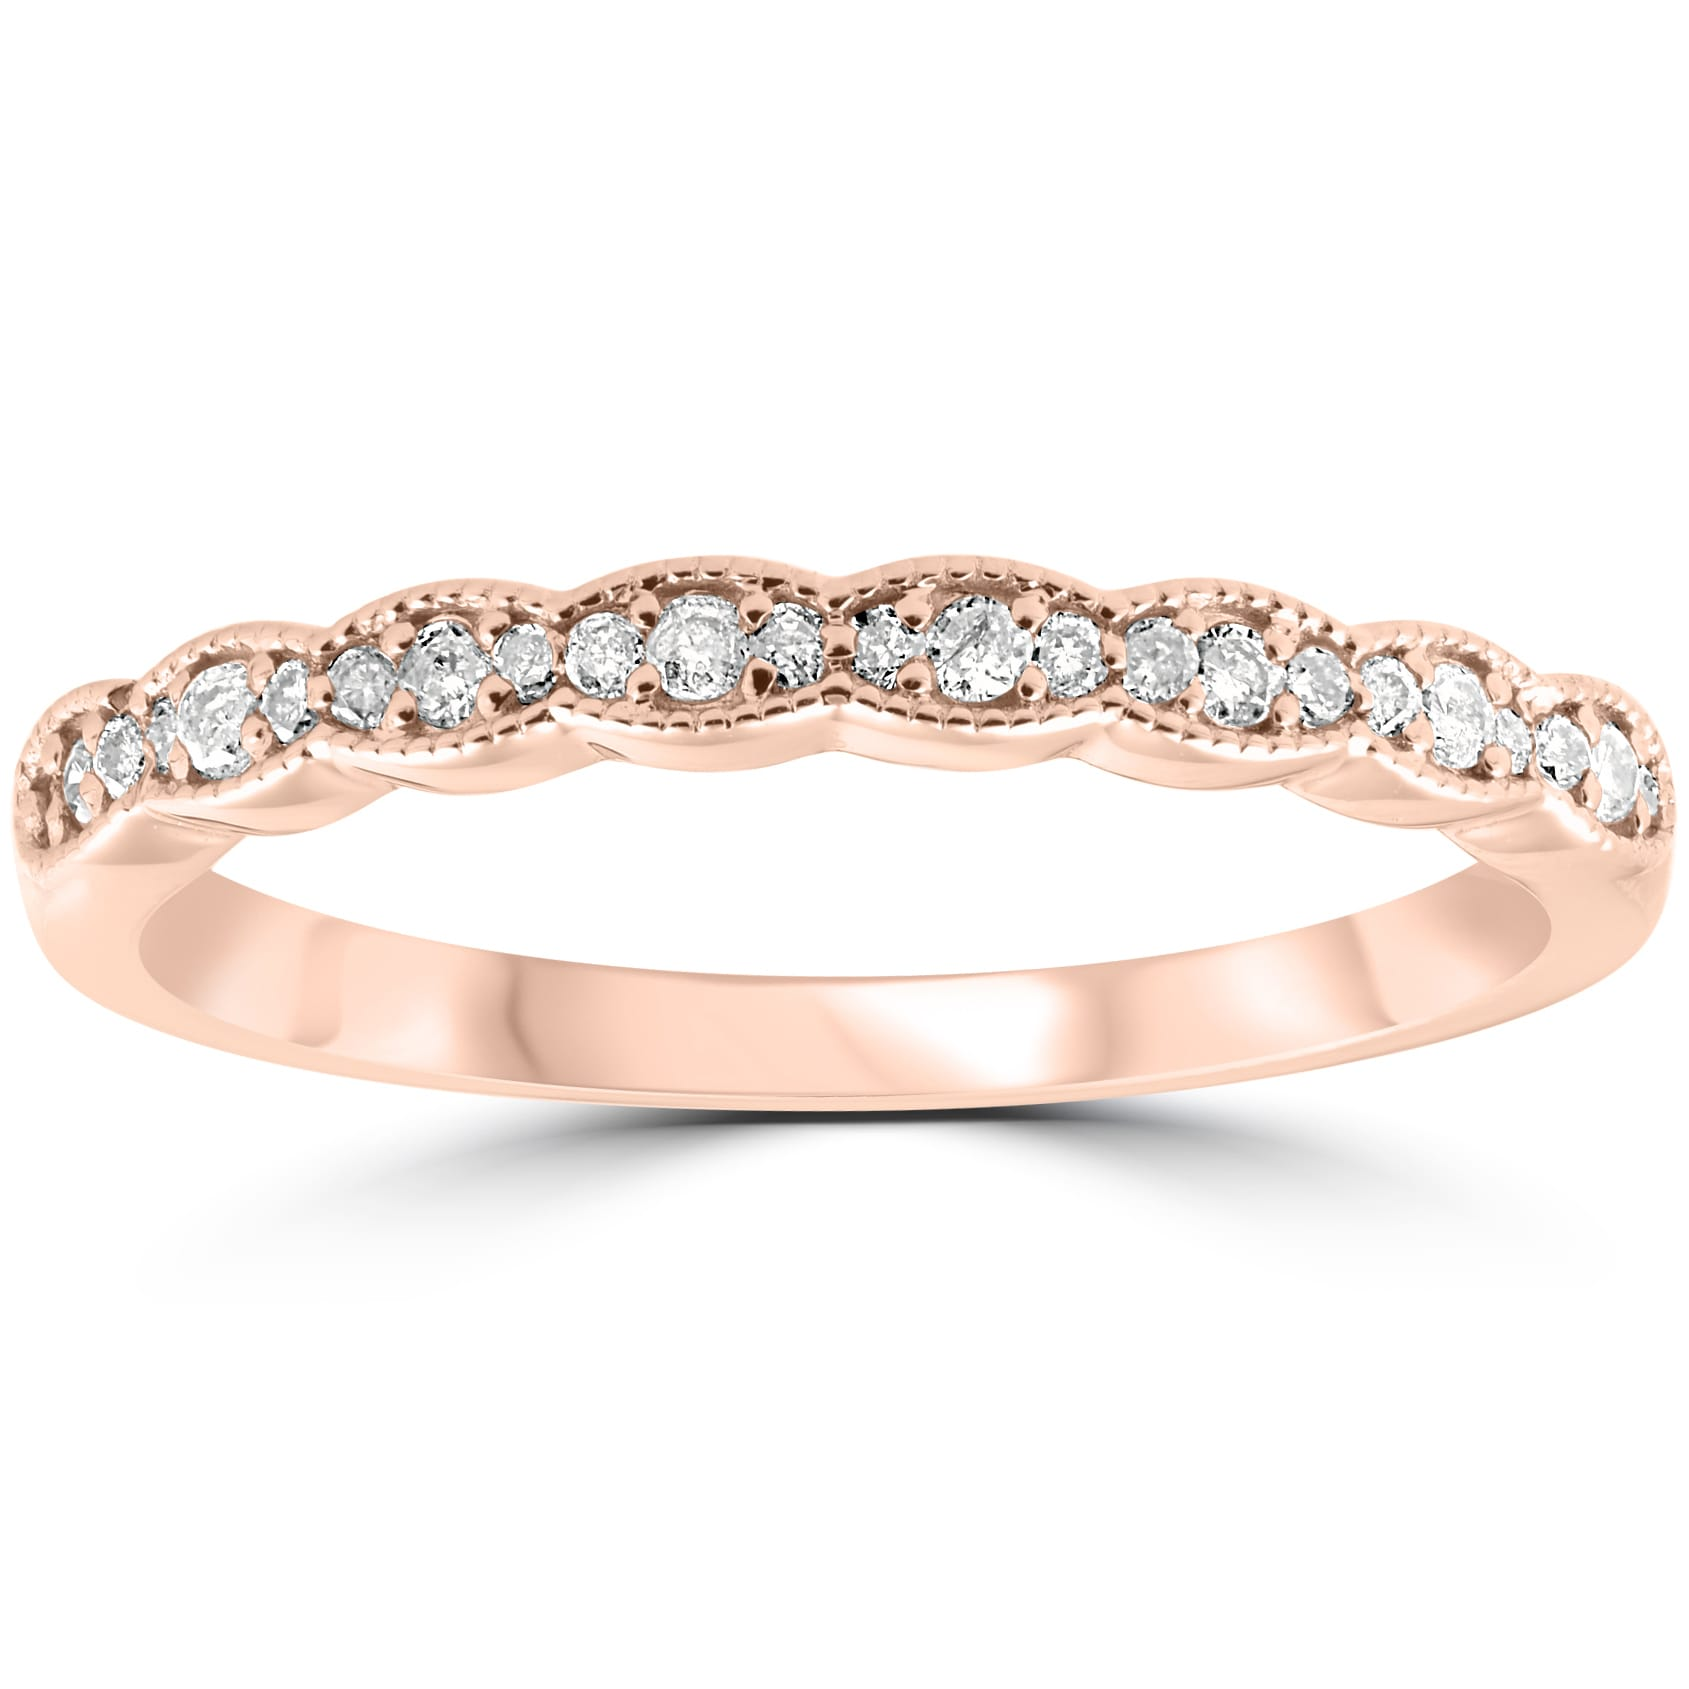 Rose Gold Wedding Ring.Pompeii3 14k Rose Gold 1 5ct Tdw Diamond Stackable Wedding Ring